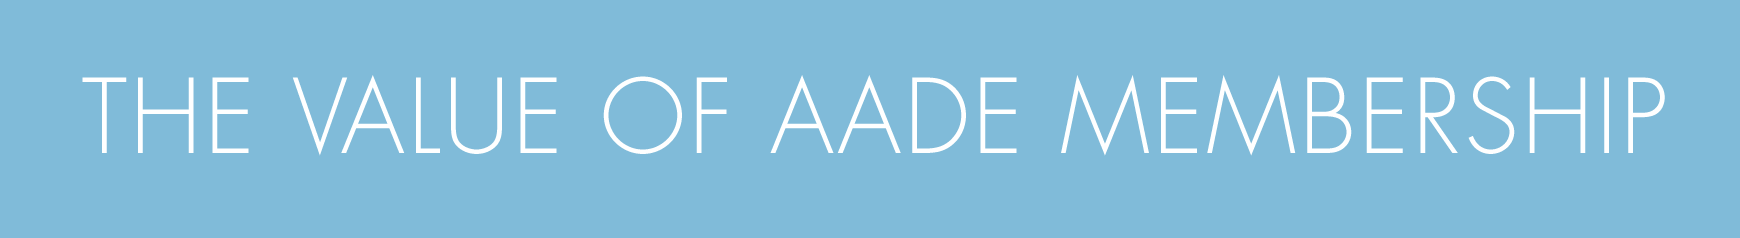 The Value of AADE Membership